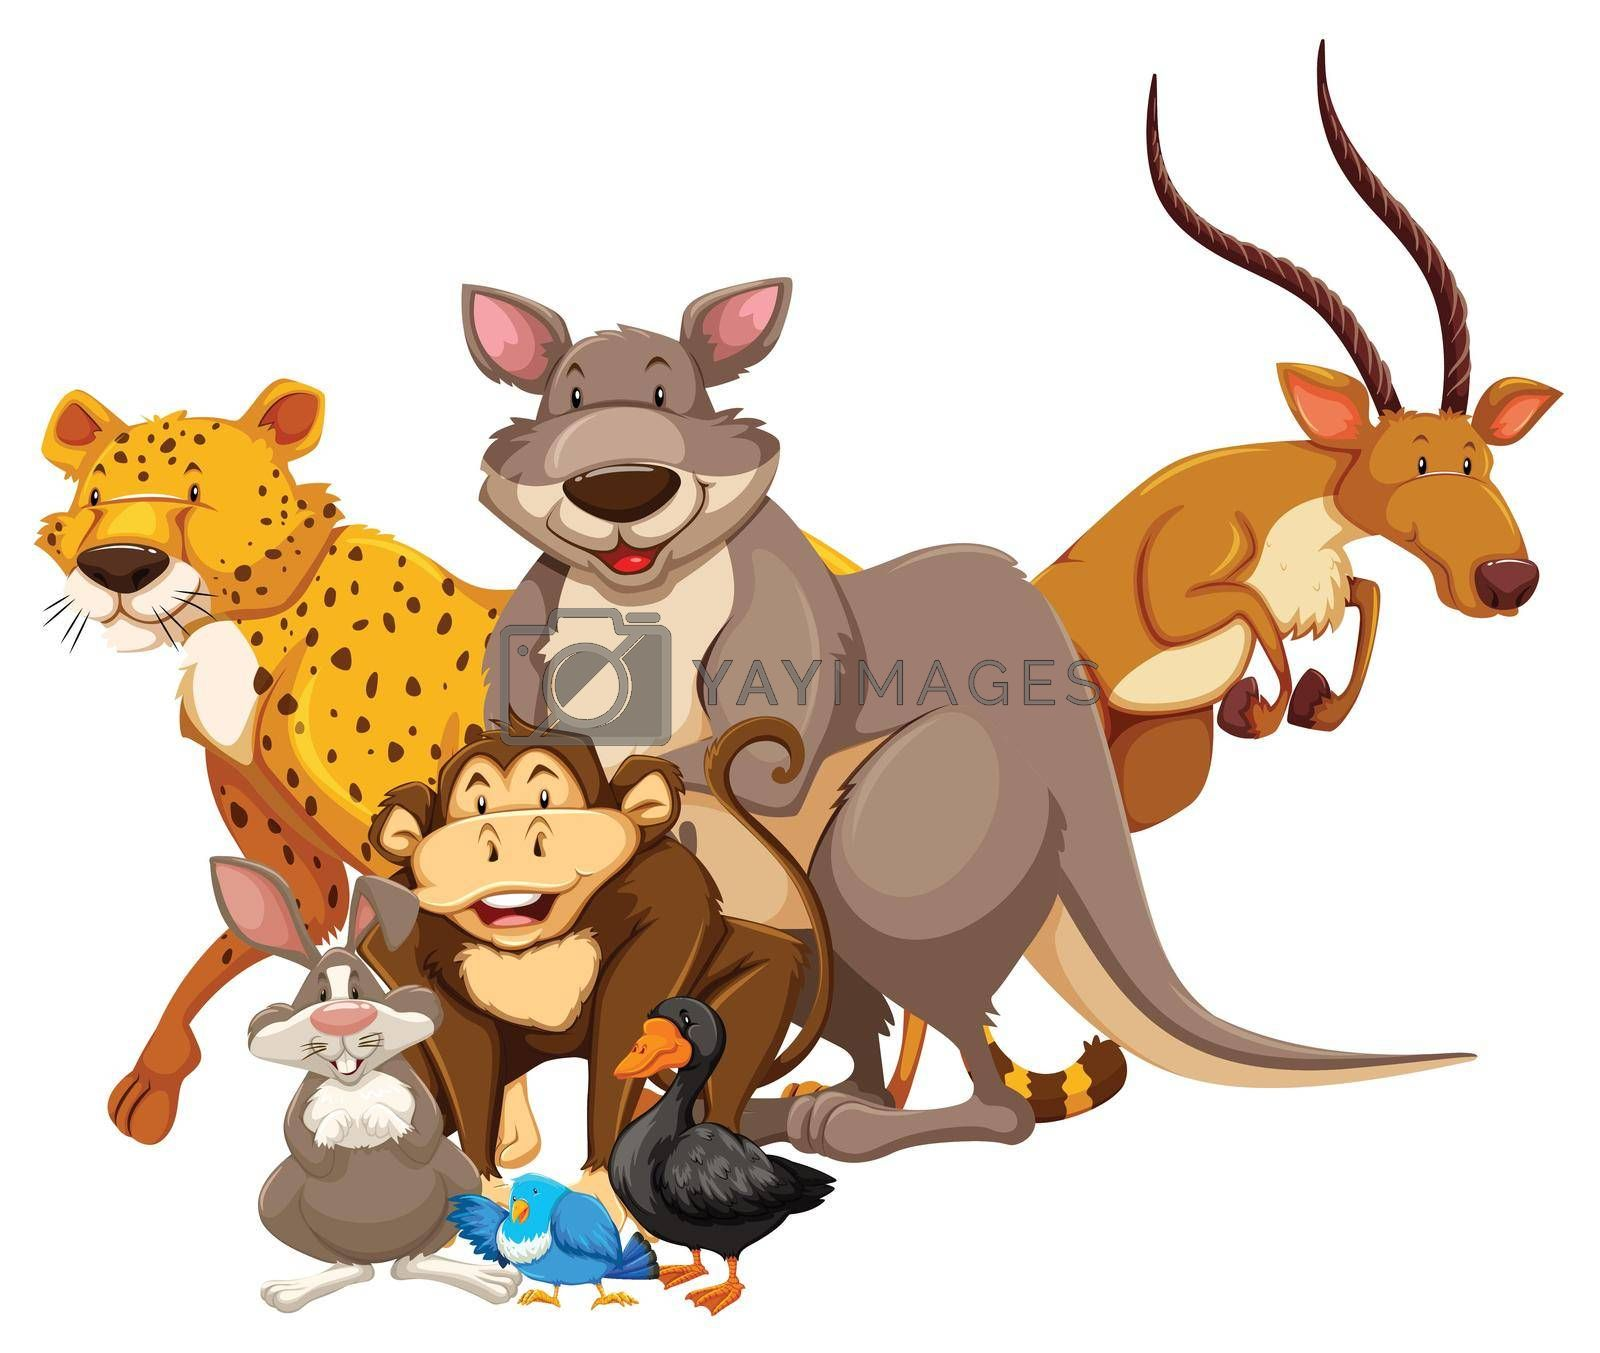 Royalty free image of Animals by iimages